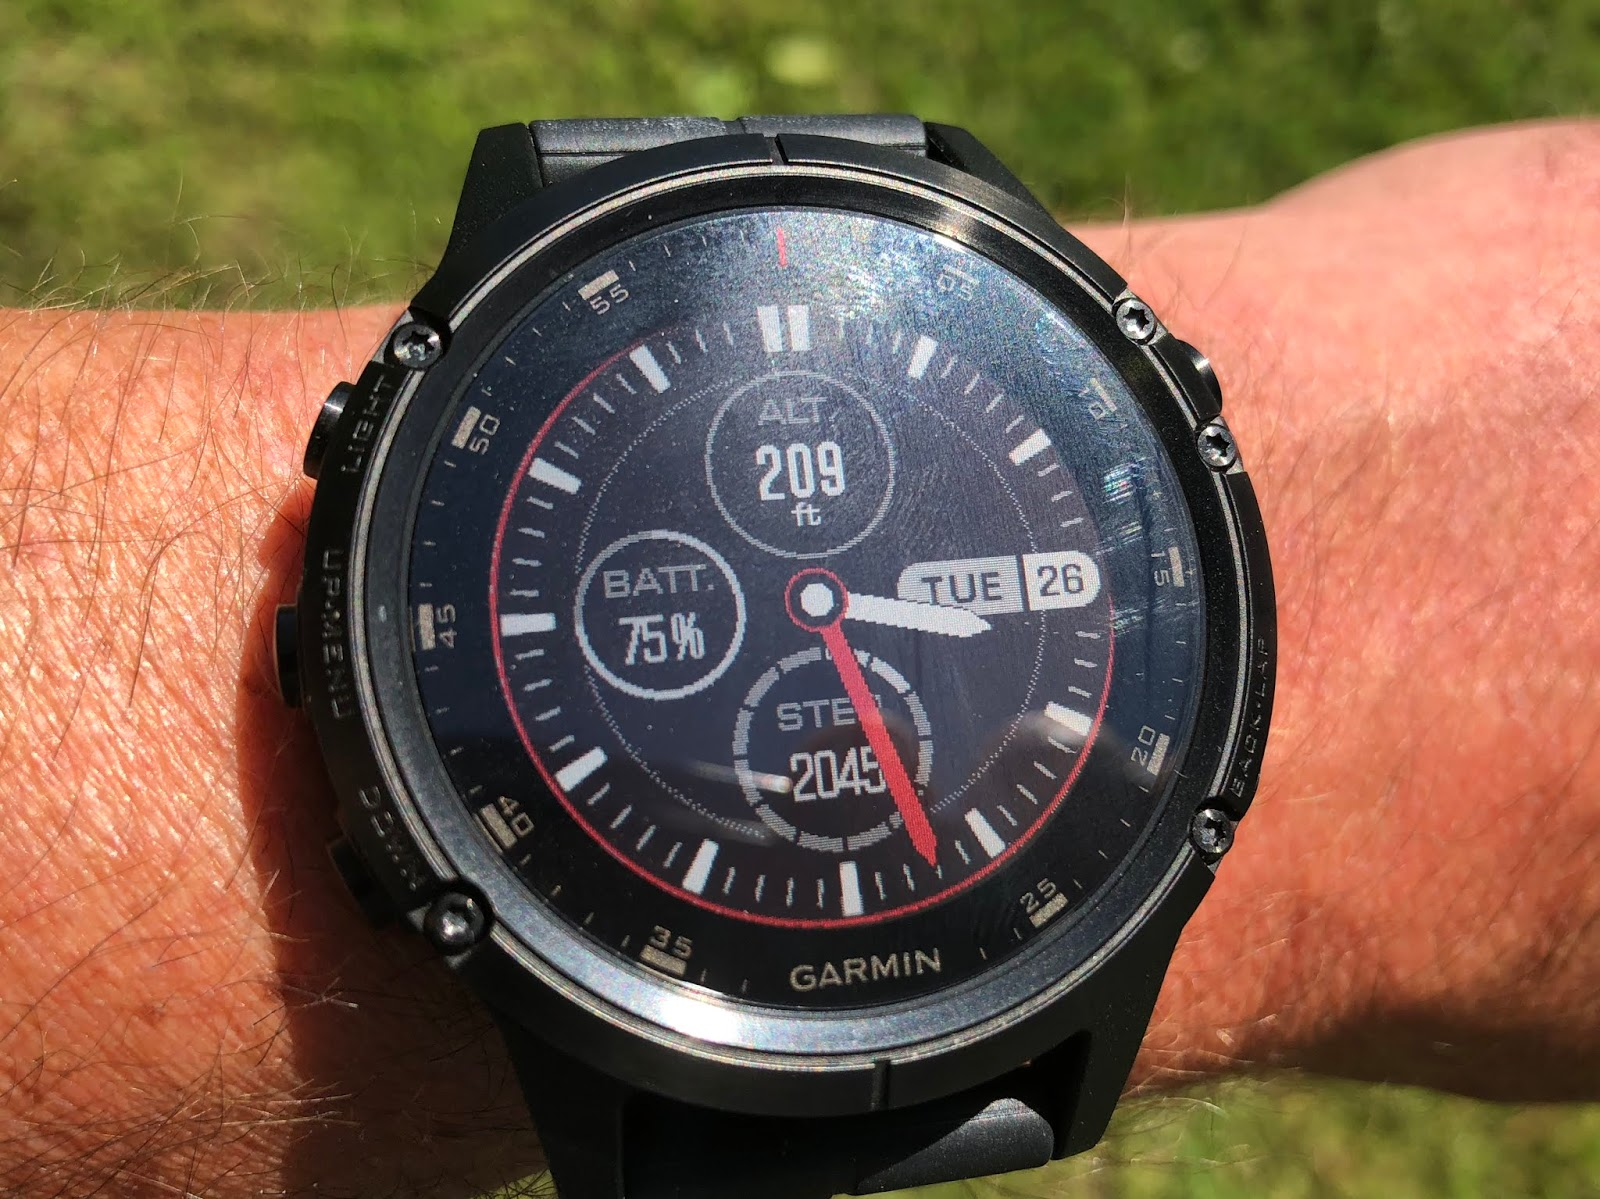 Road Trail Run Garmin Fenix 5 Plus Initial Testing Review